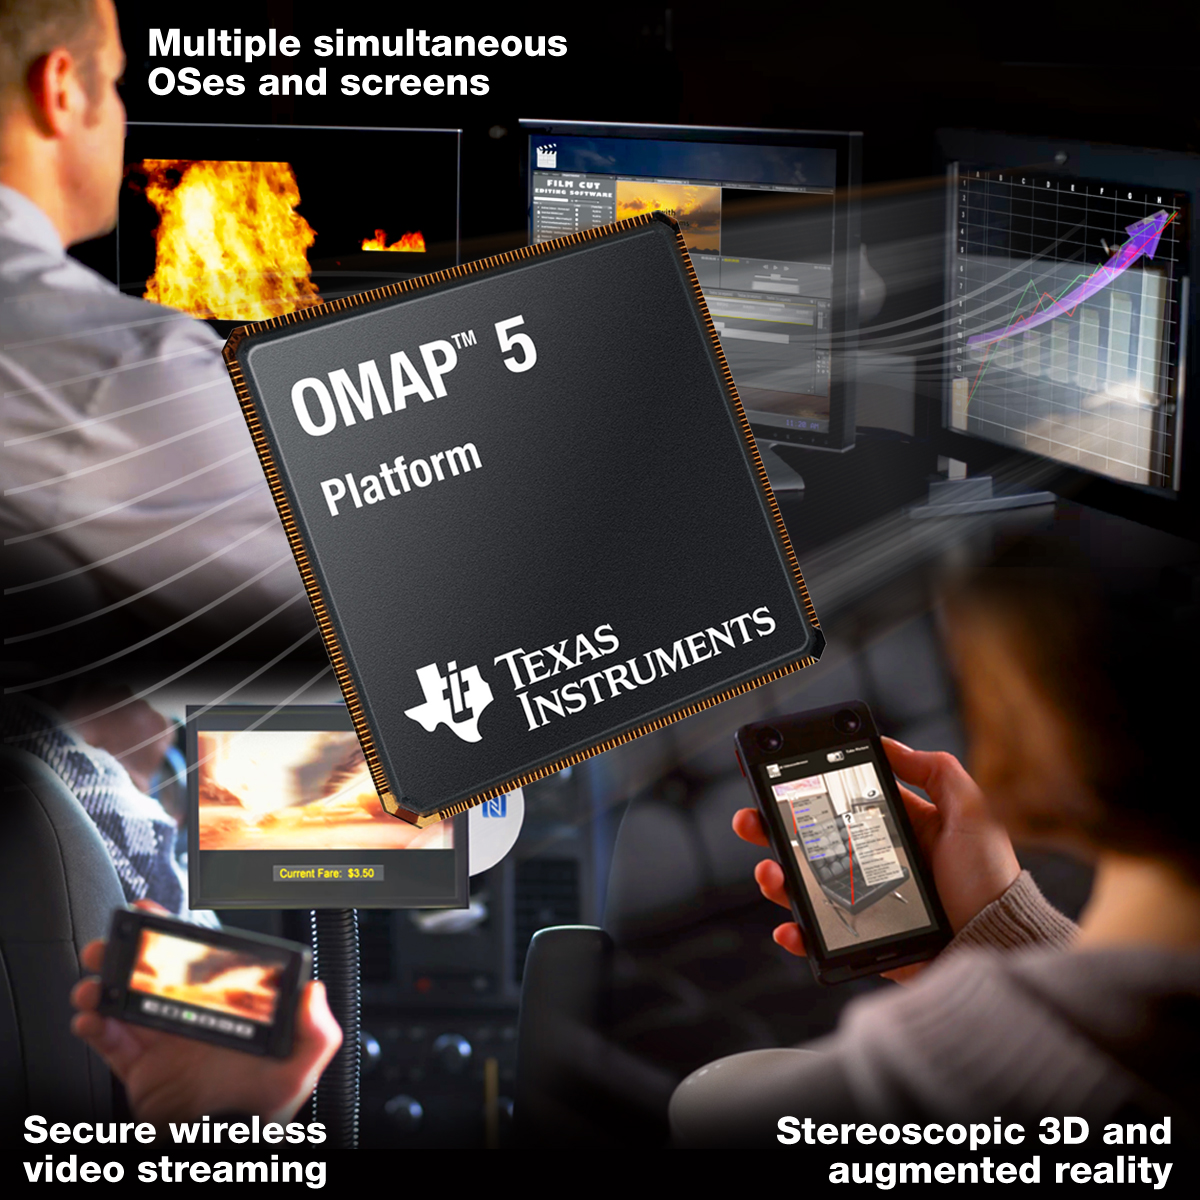 Ti Reveals Omap 5 The First Arm Cortex A15 Soc Omap4 Block Diagram Supports Up To Four Cameras One Demo I Saw Intel Put Together A While Ago Was Of Smartphone With Two Equal Resolution Quality On Its